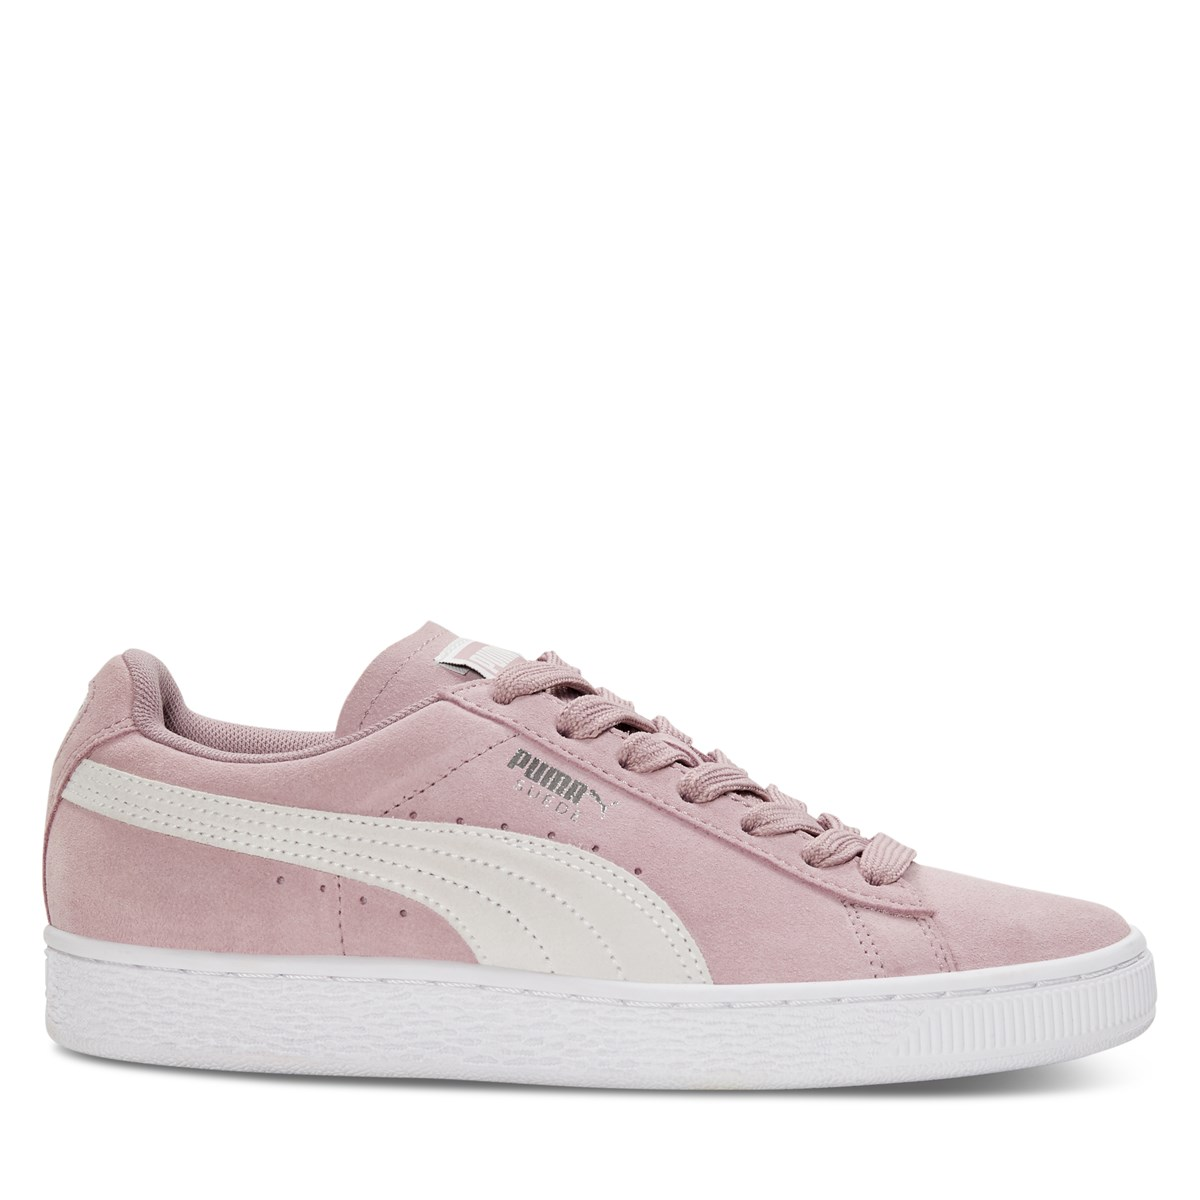 Women's Classic Sneakers in Rose Suede